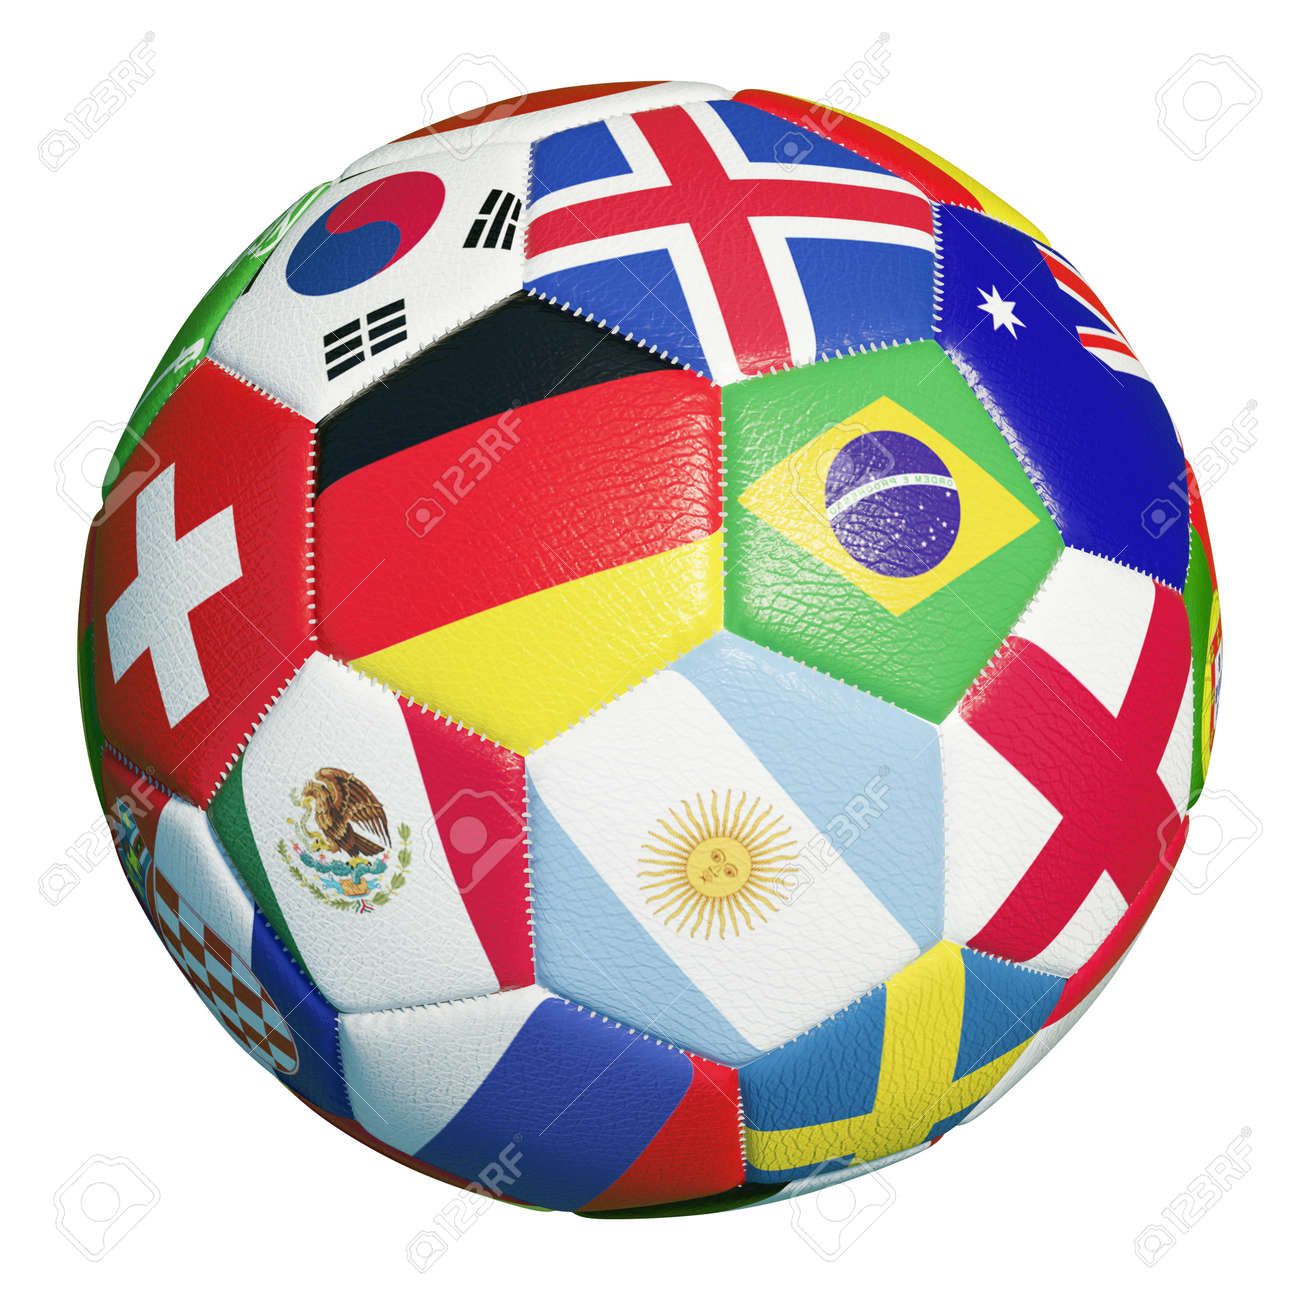 Colorful football with many flags of soccer match 2018 participants (3D rendering) - 156039742